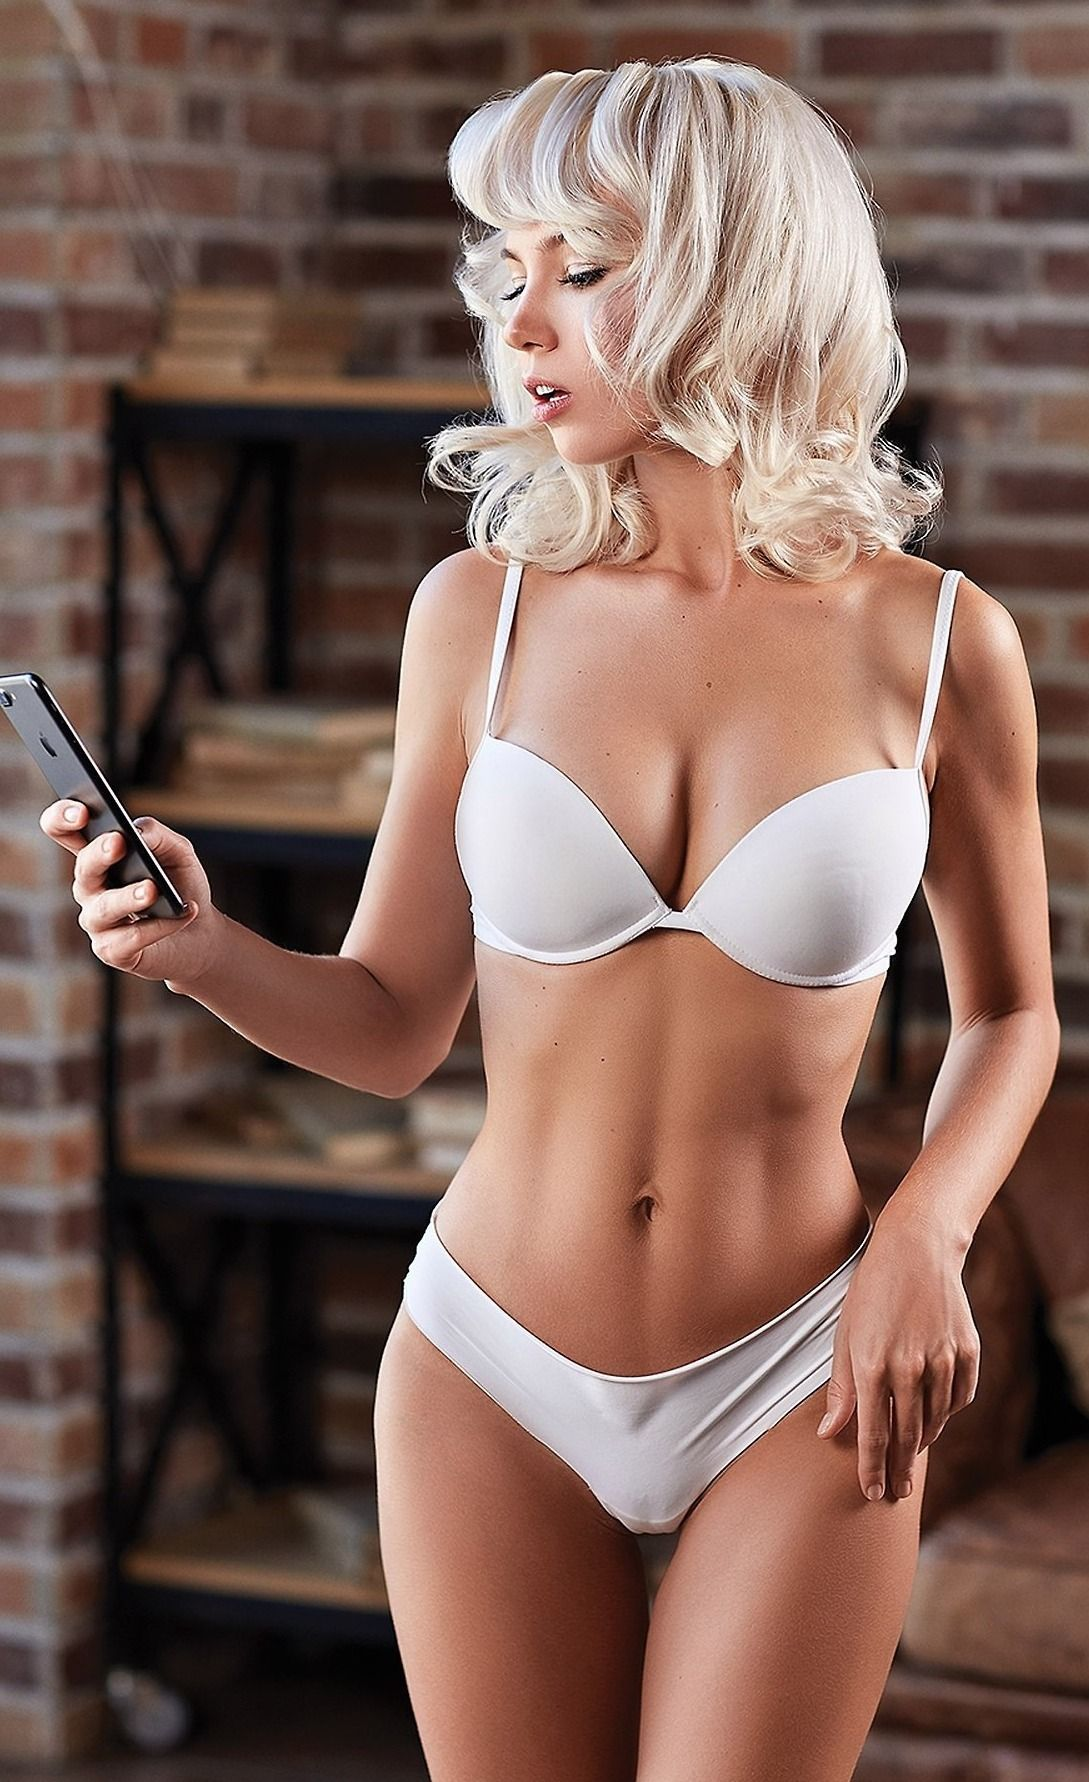 35b652c22c9a5 Collection of beautiful Pinterest women and Dorian Gray blogs ...